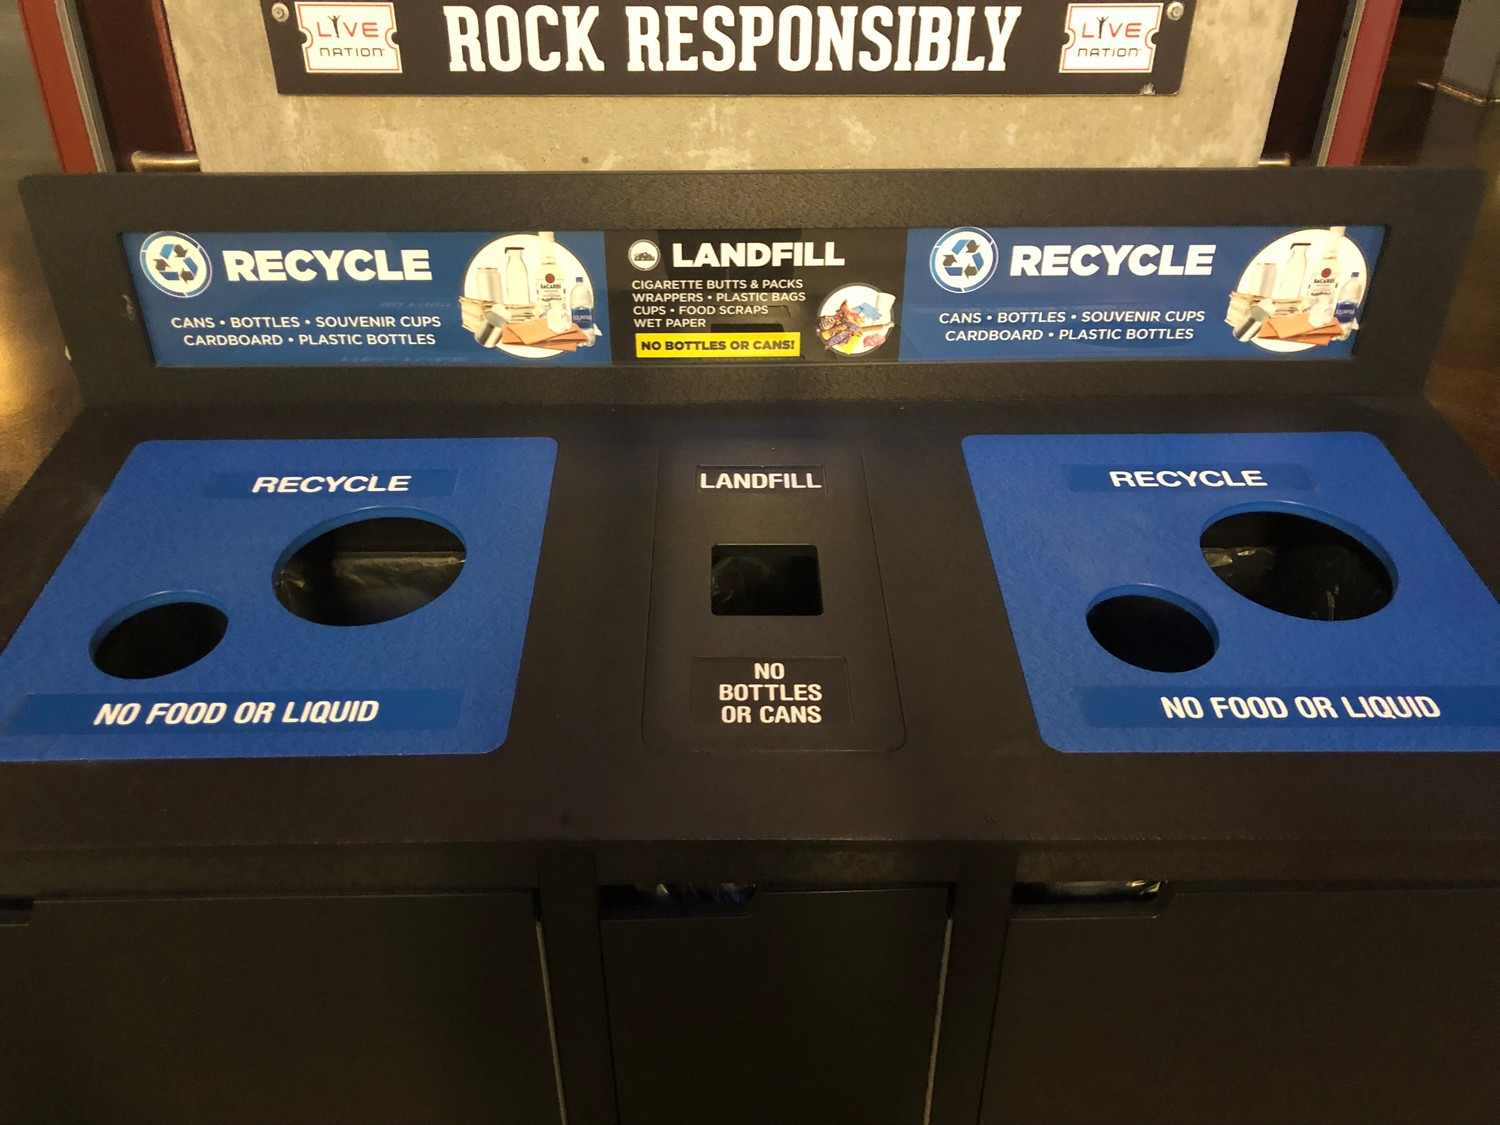 Photos by Alexandra Firmbach